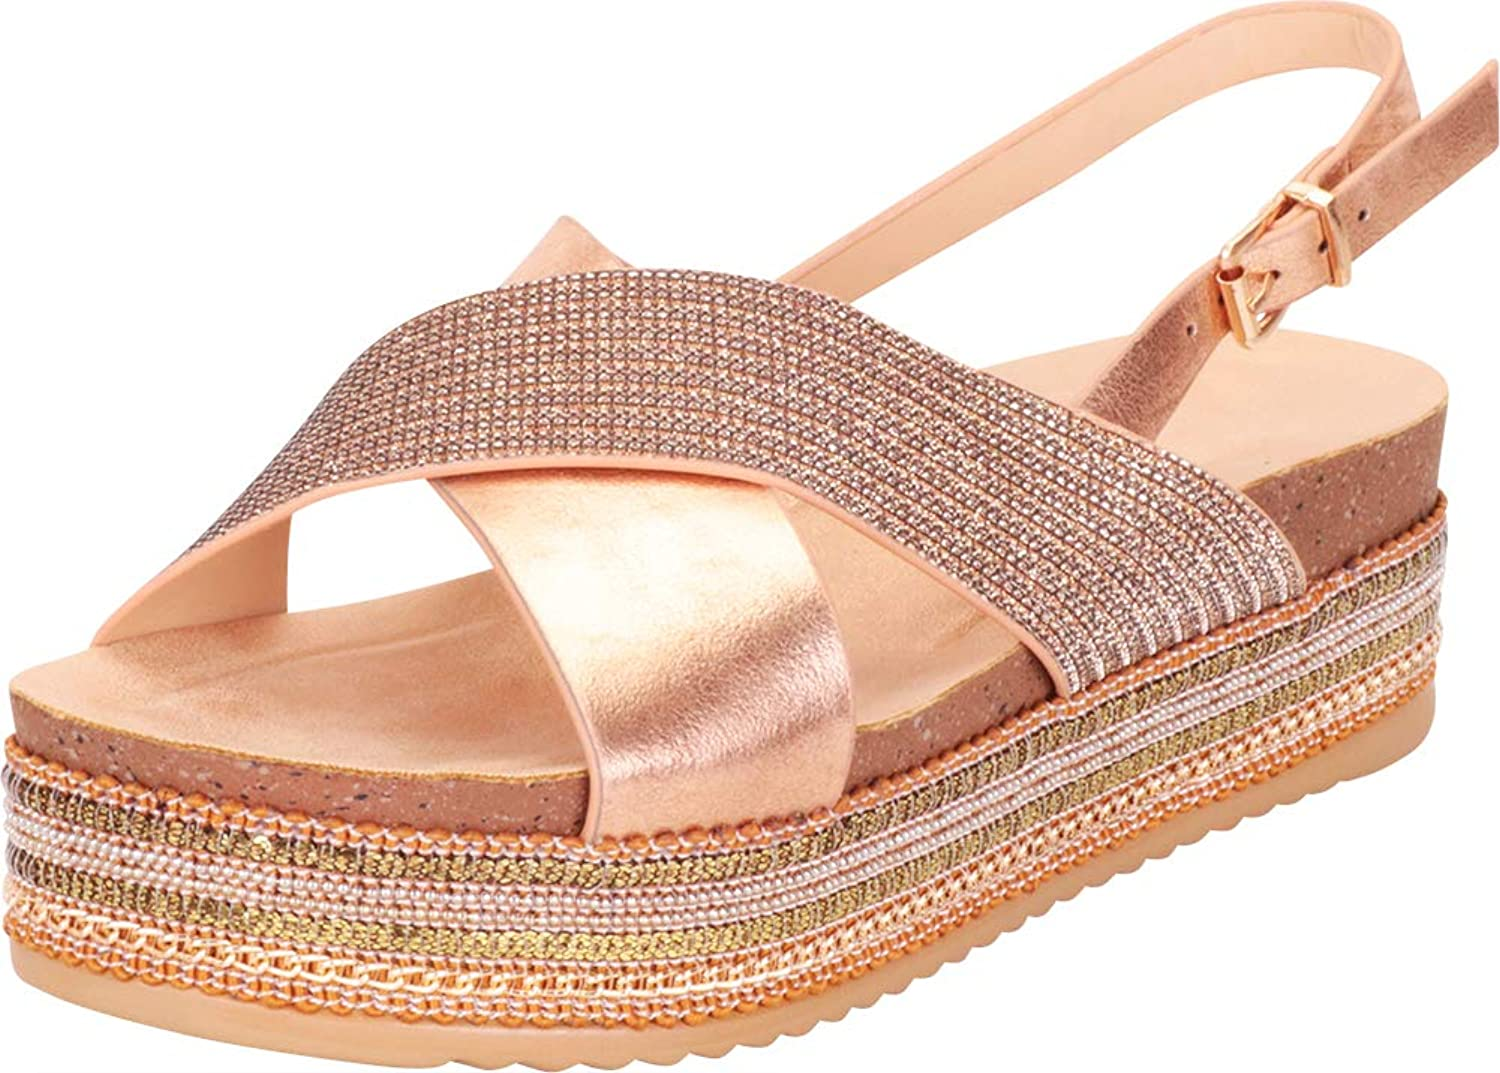 Cambridge Select Women's Open Toe Strap Crisscross Slingback Beaded Chain Mixed Media Flatform Sandal